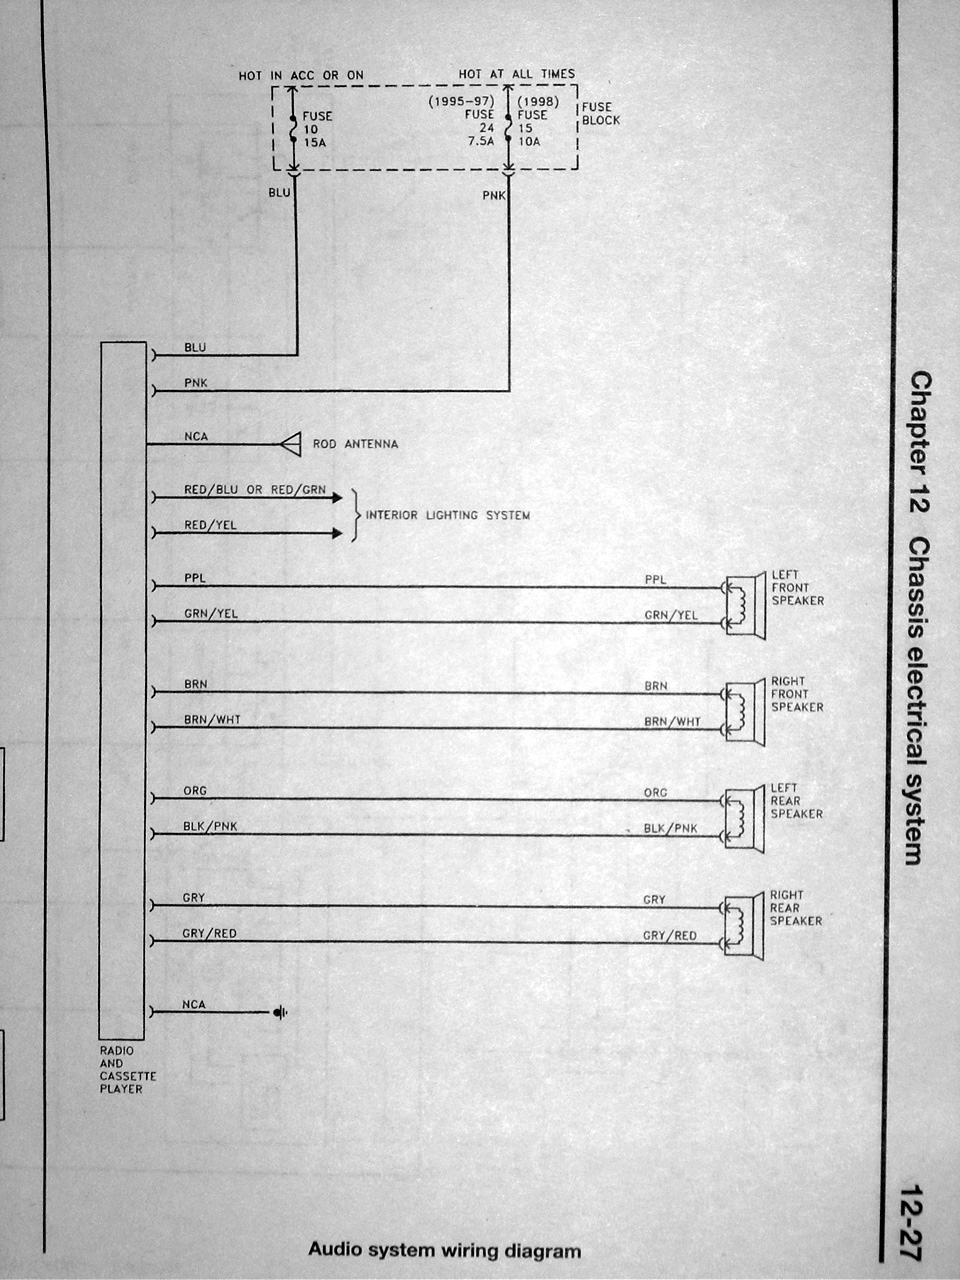 DSC01849 wiring diagram thread *useful info* nissan forum Ford Focus Wiring Diagram at mifinder.co